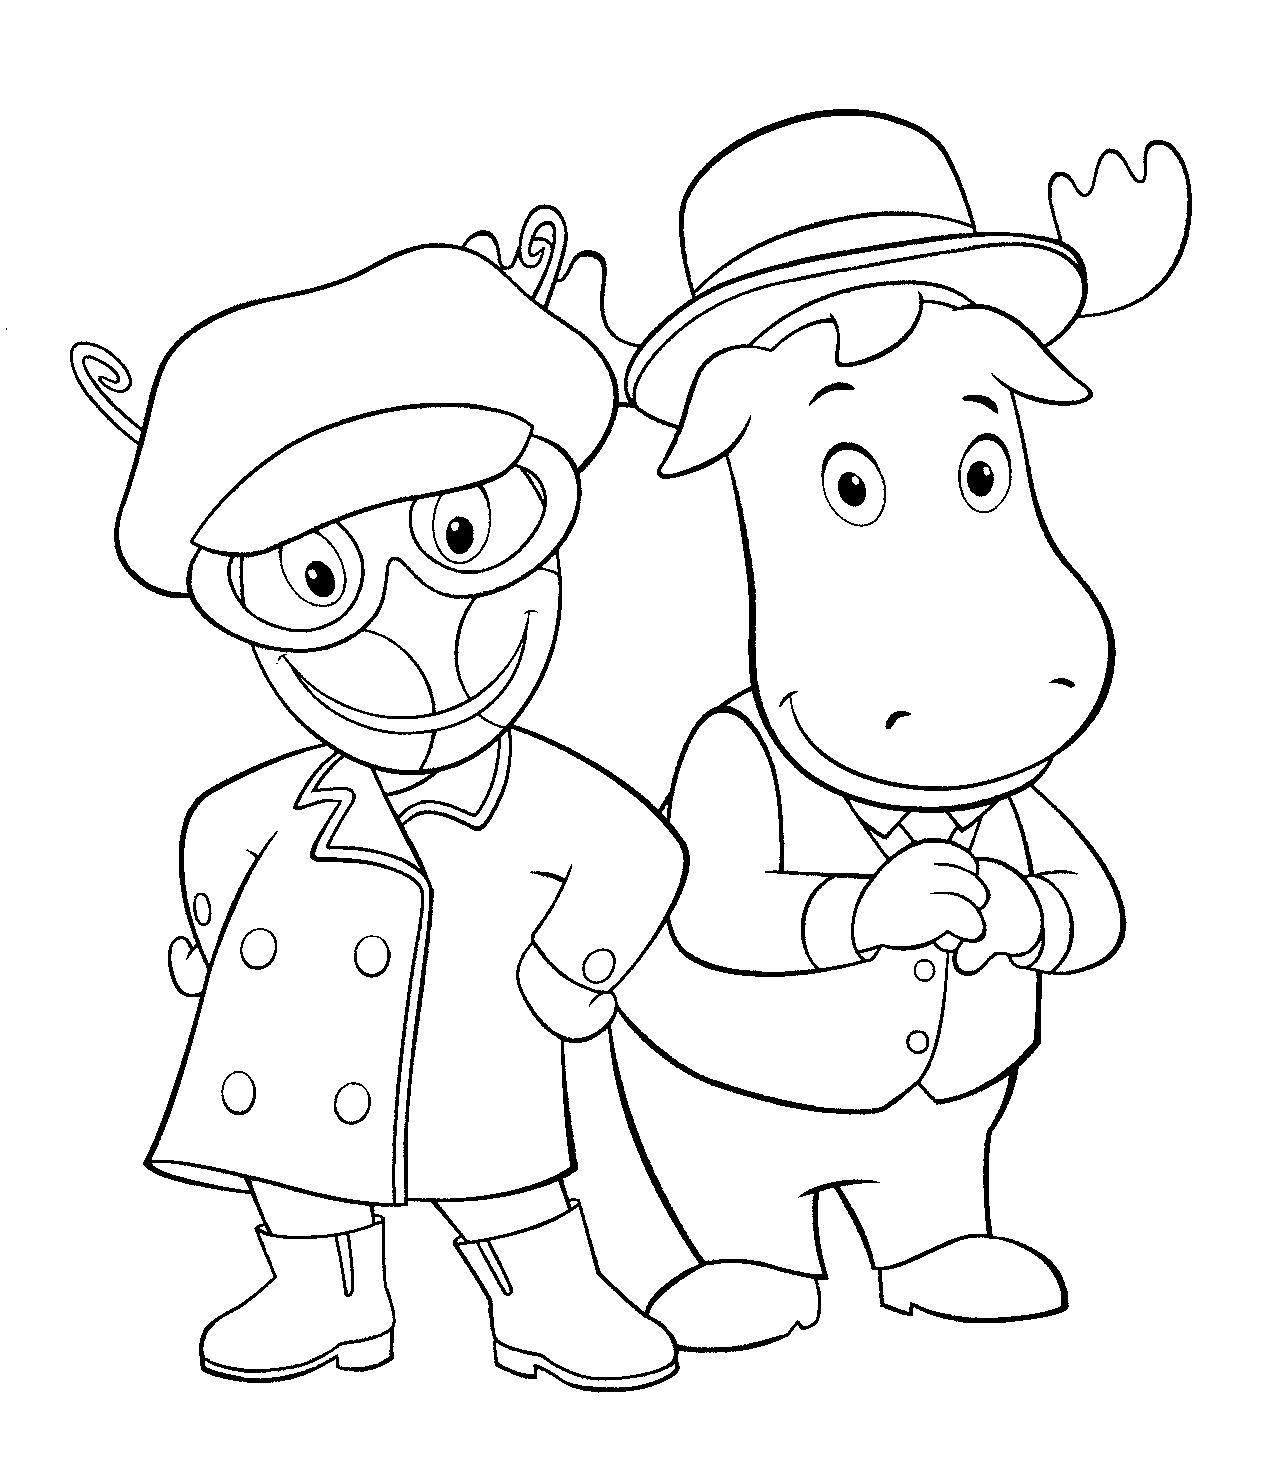 printable coloring pages com - photo#1